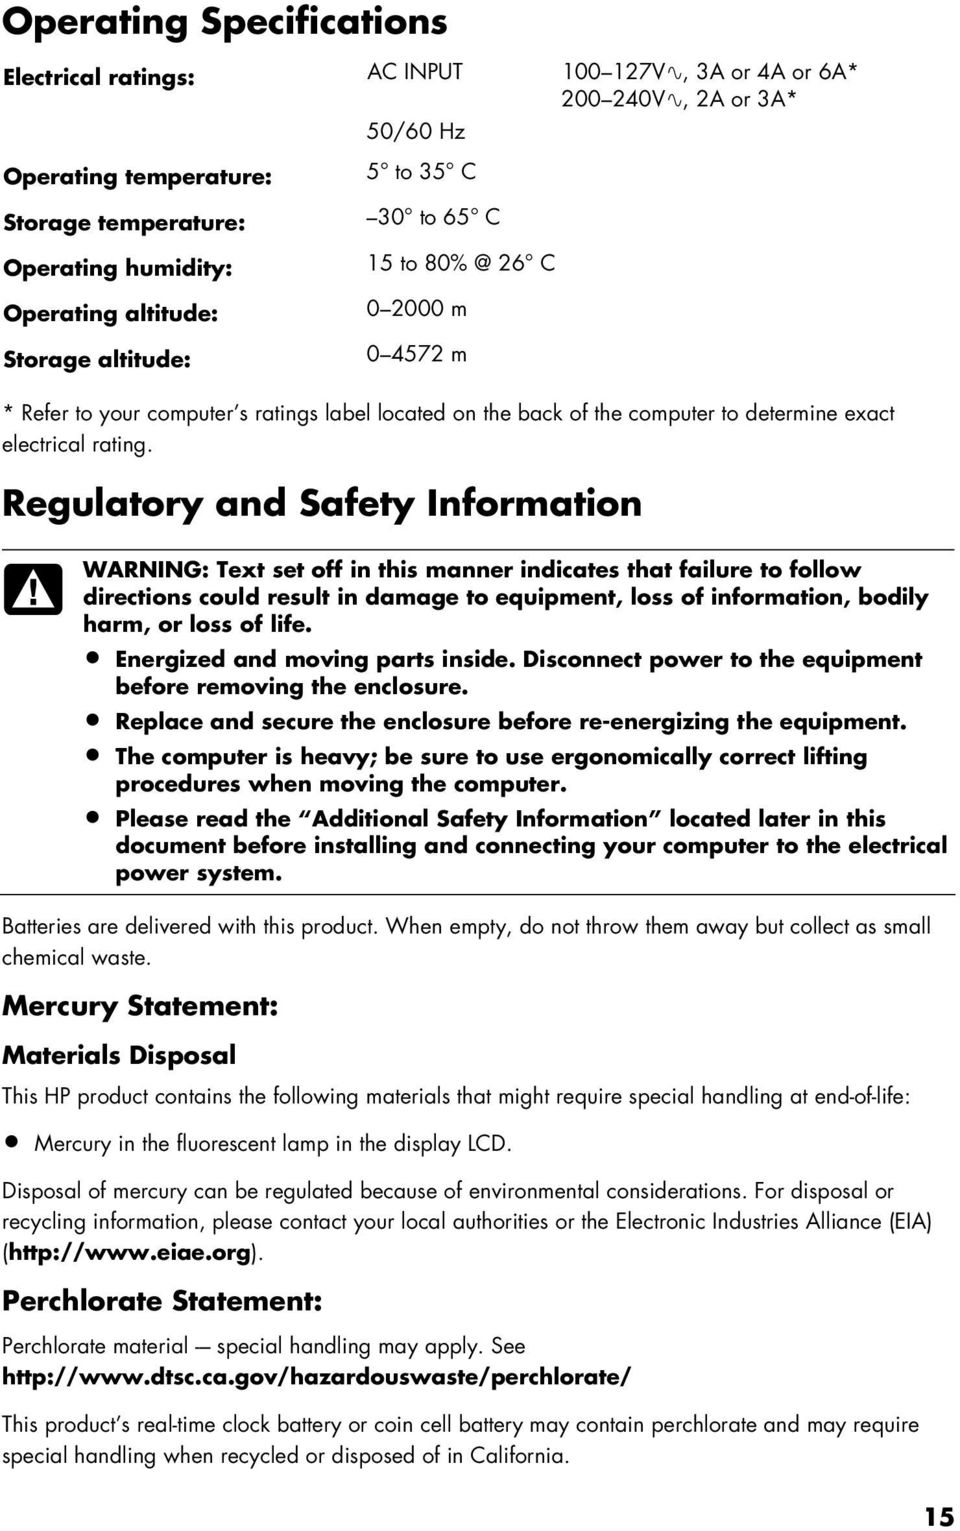 Regulatory and Safety Information WARNING: Text set off in this manner indicates that failure to follow directions could result in damage to equipment, loss of information, bodily harm, or loss of